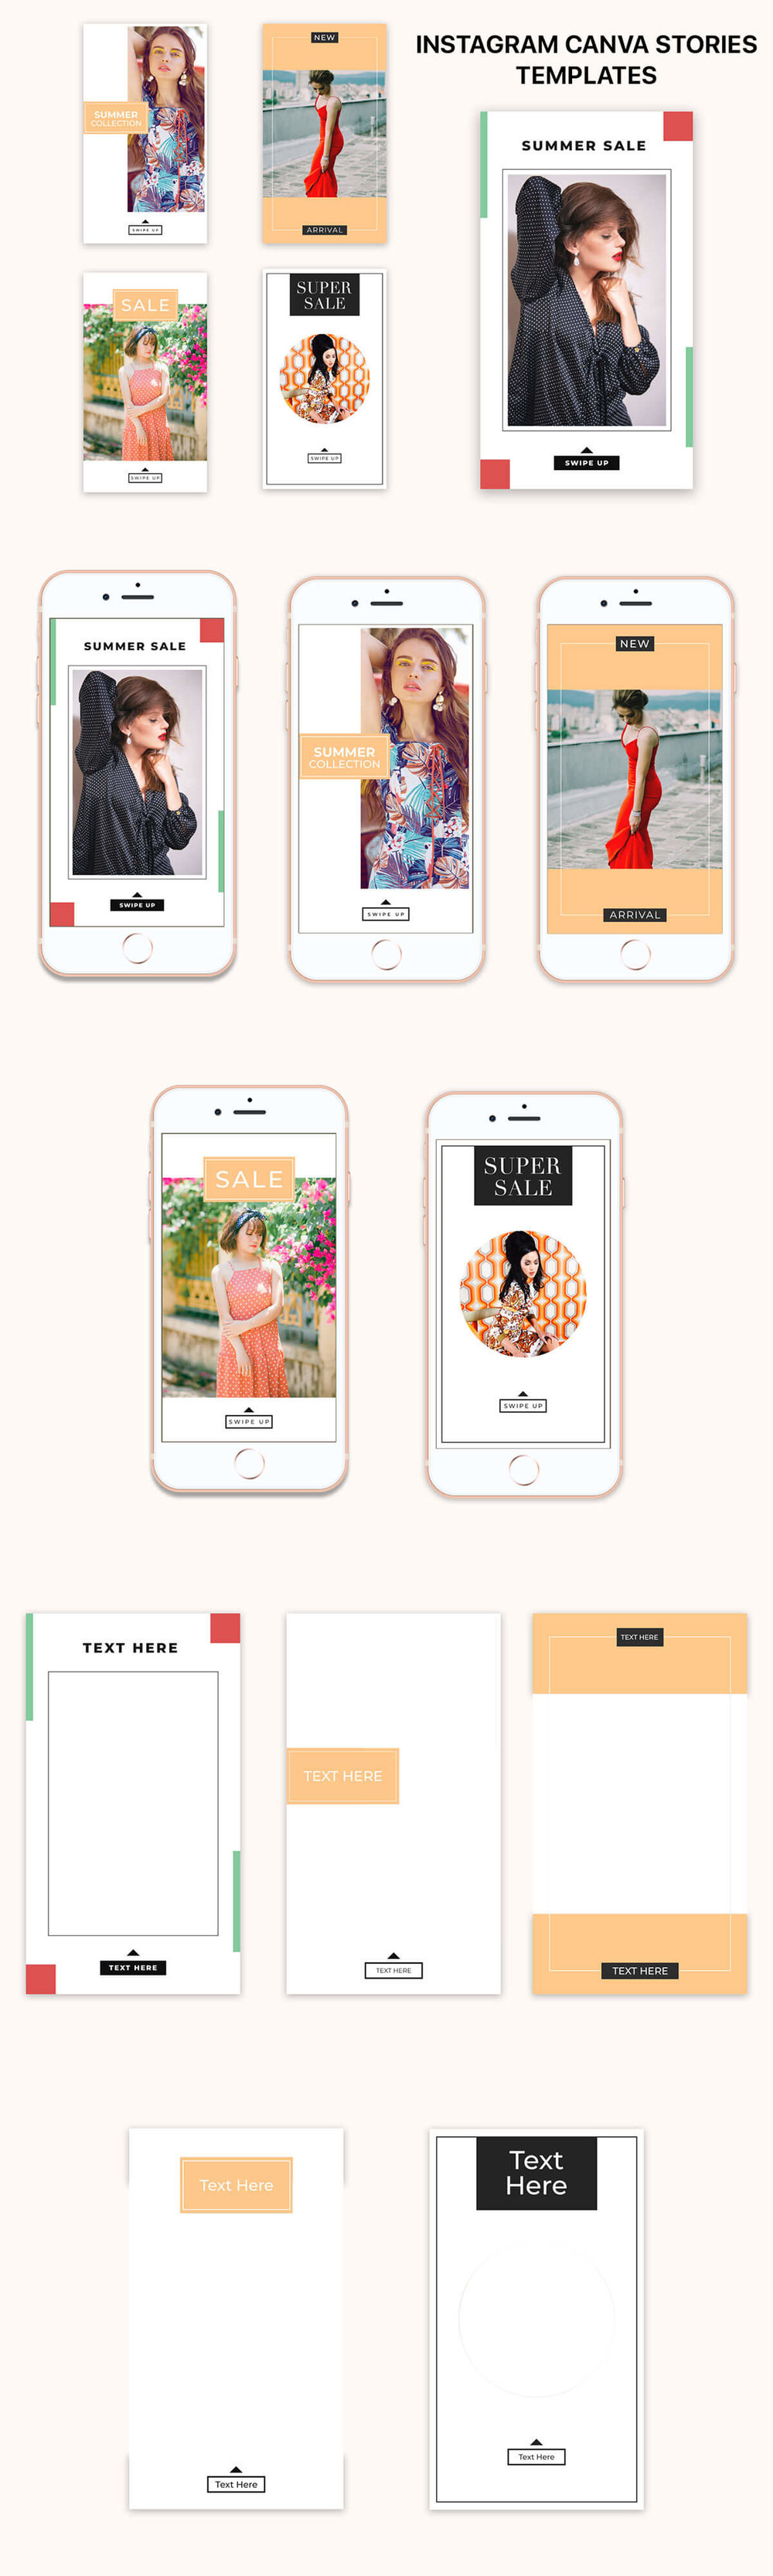 Free #Instagram #Canva Stories #Templates  Collection includes 5 eye-catching stories templates. It's available in  PNG format.